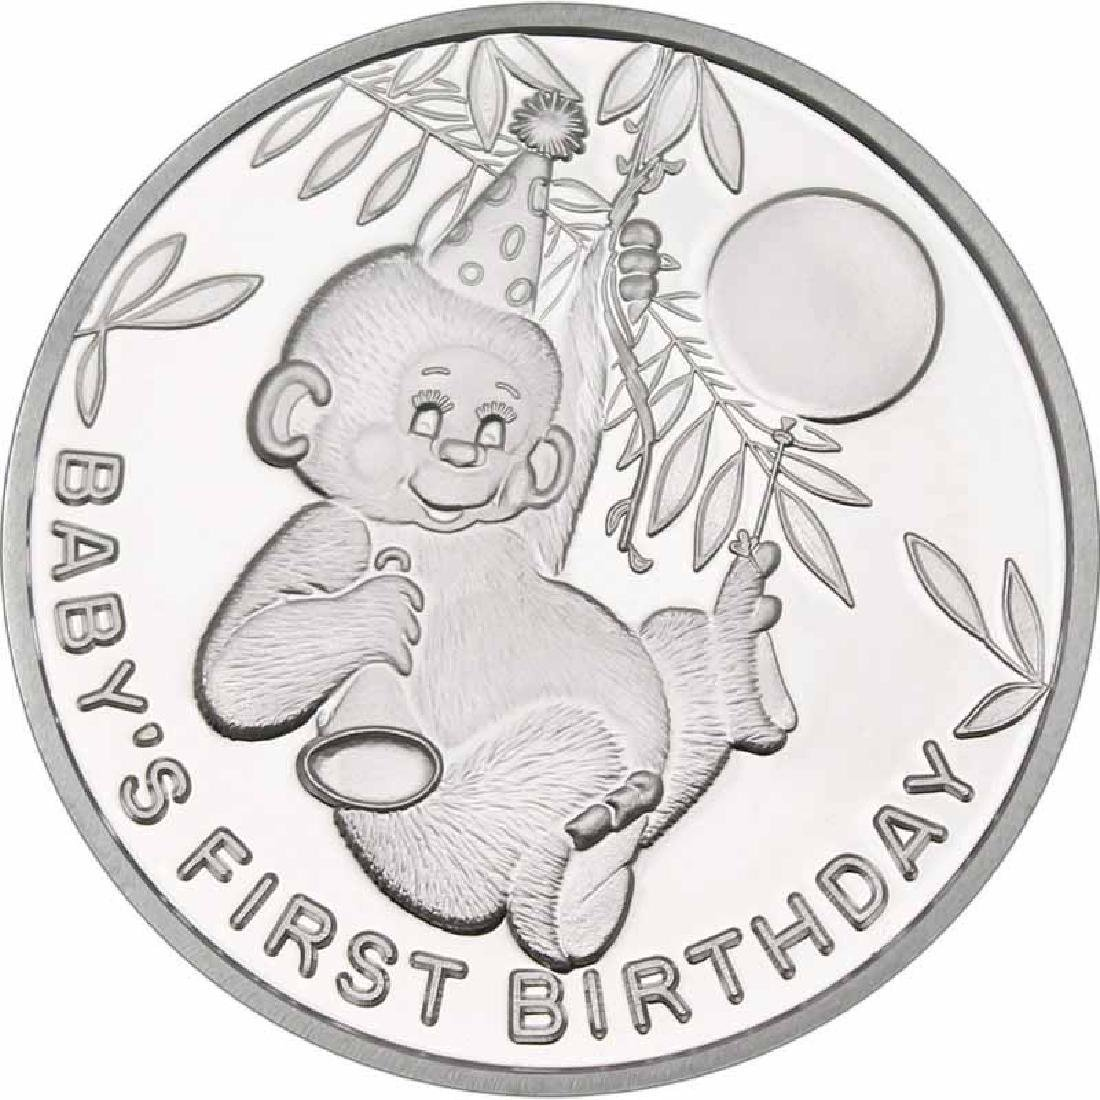 Babys First Birthday .999 Silver 1 oz Round